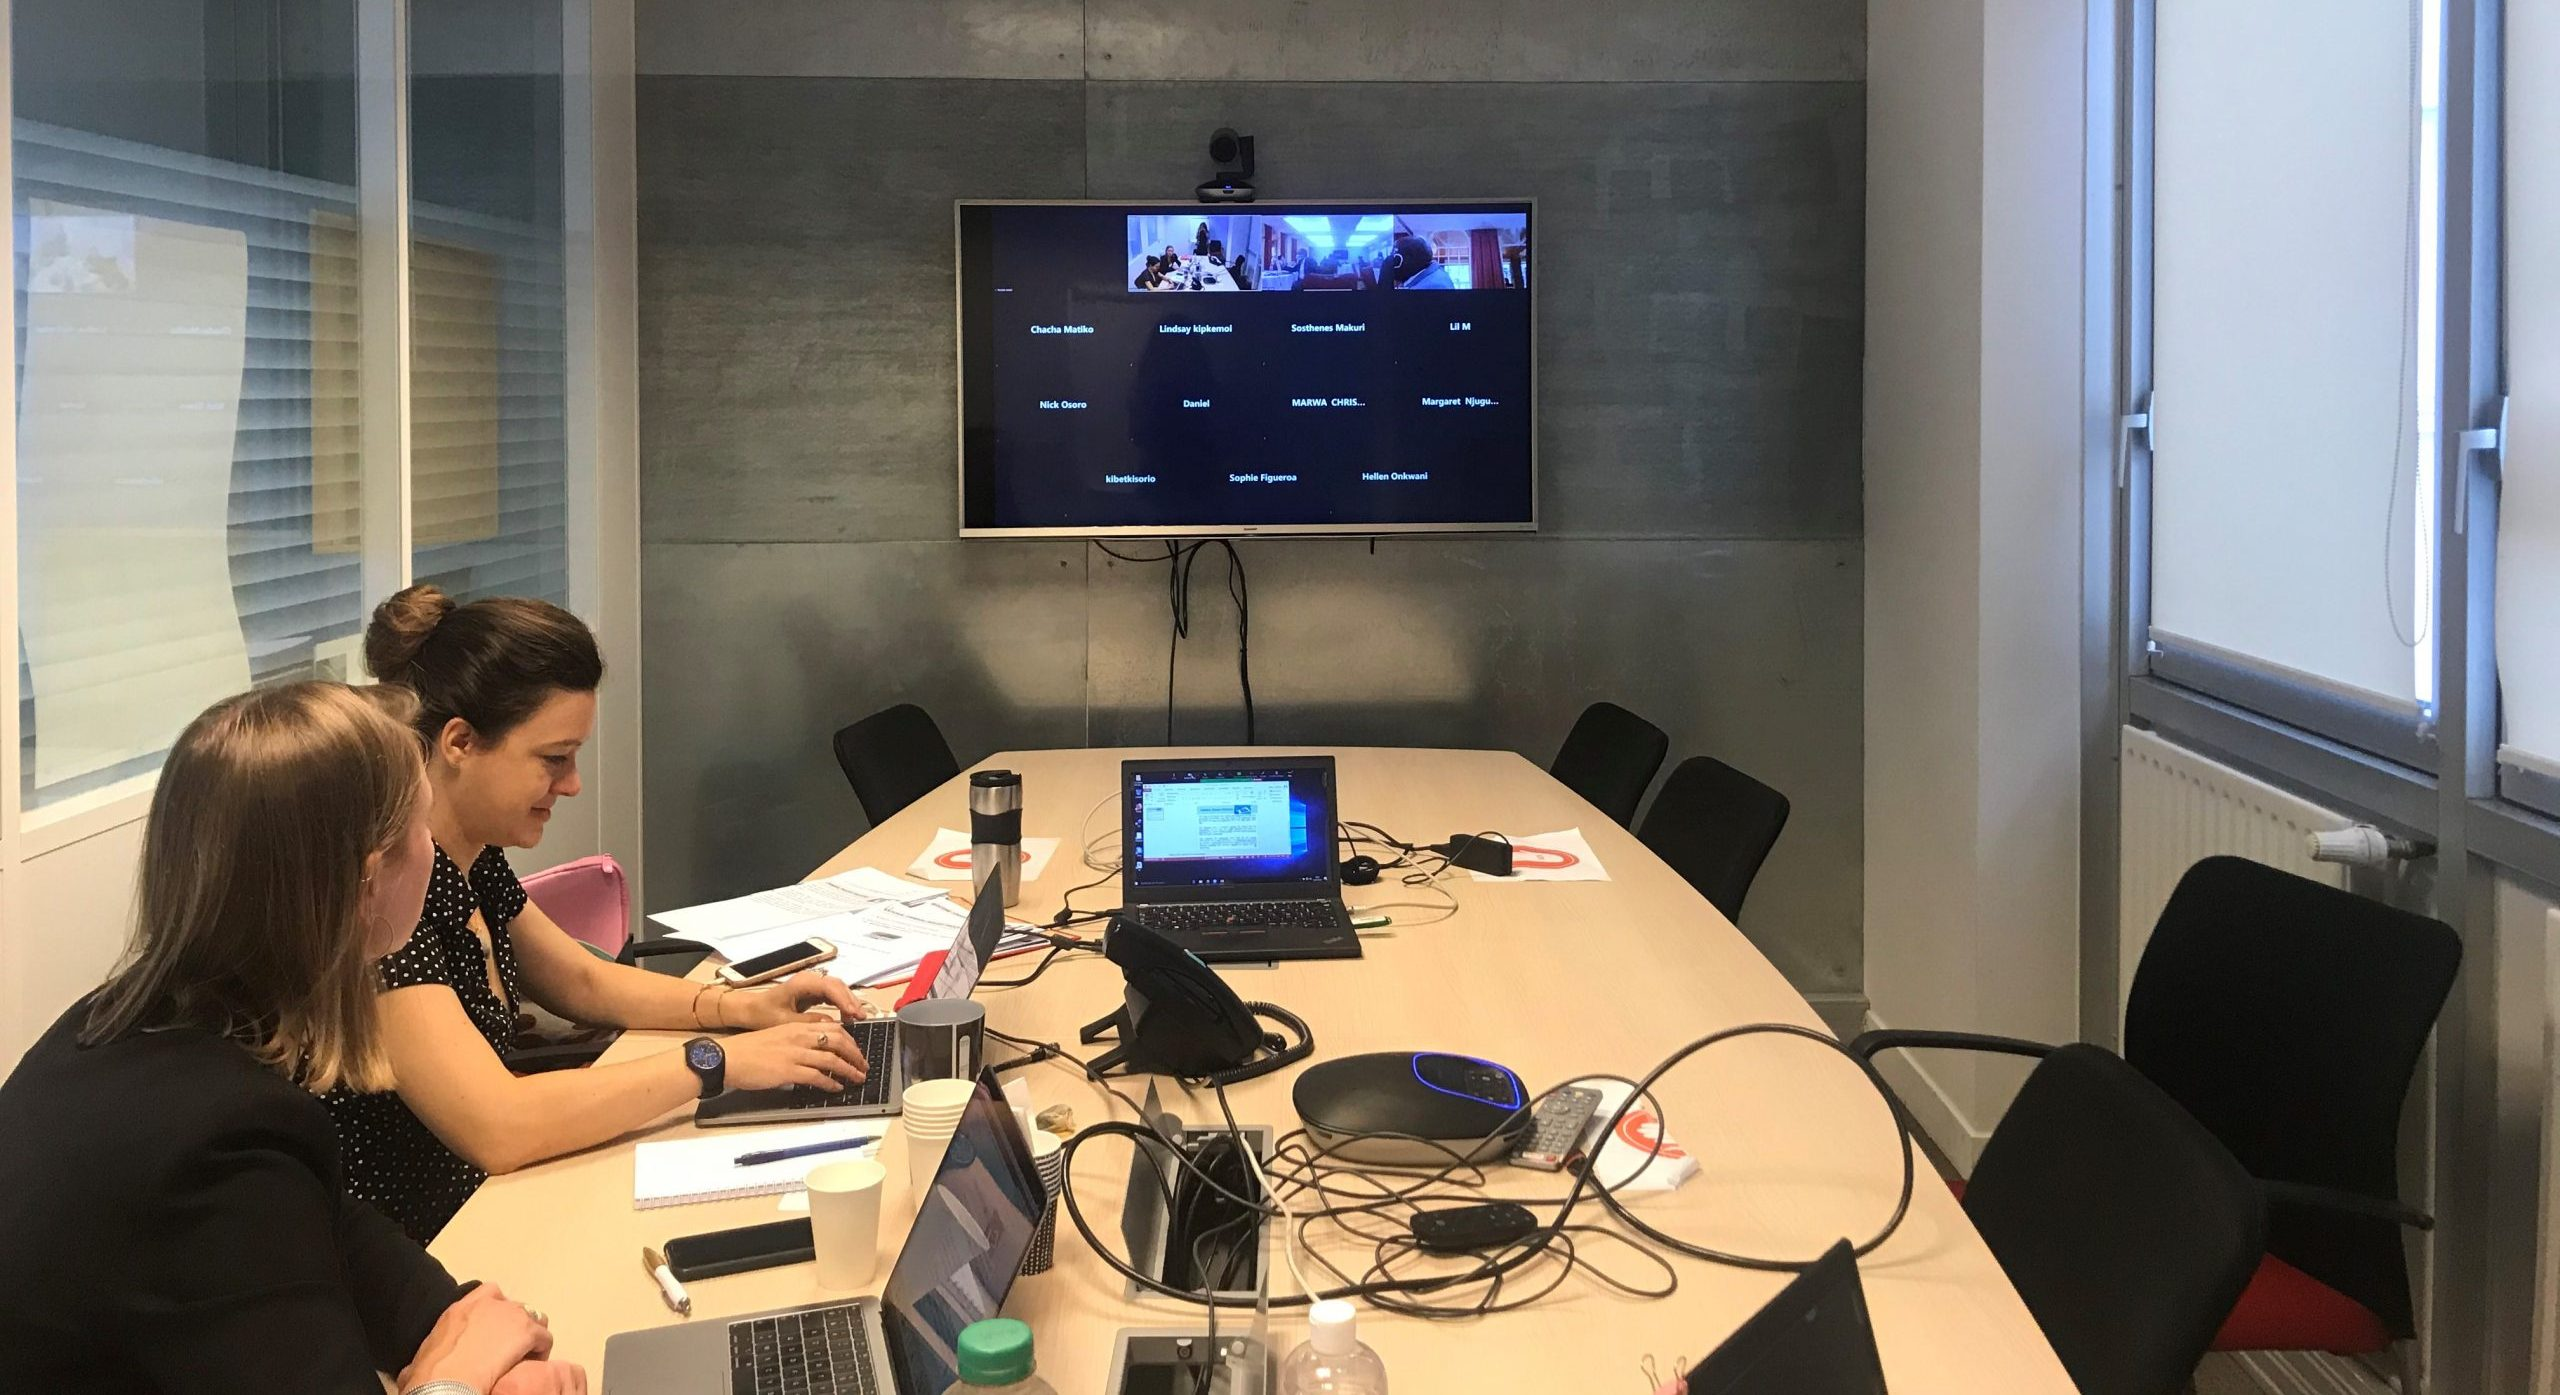 MEDISAFE experts conducting a webinar from Paris, Expertise France